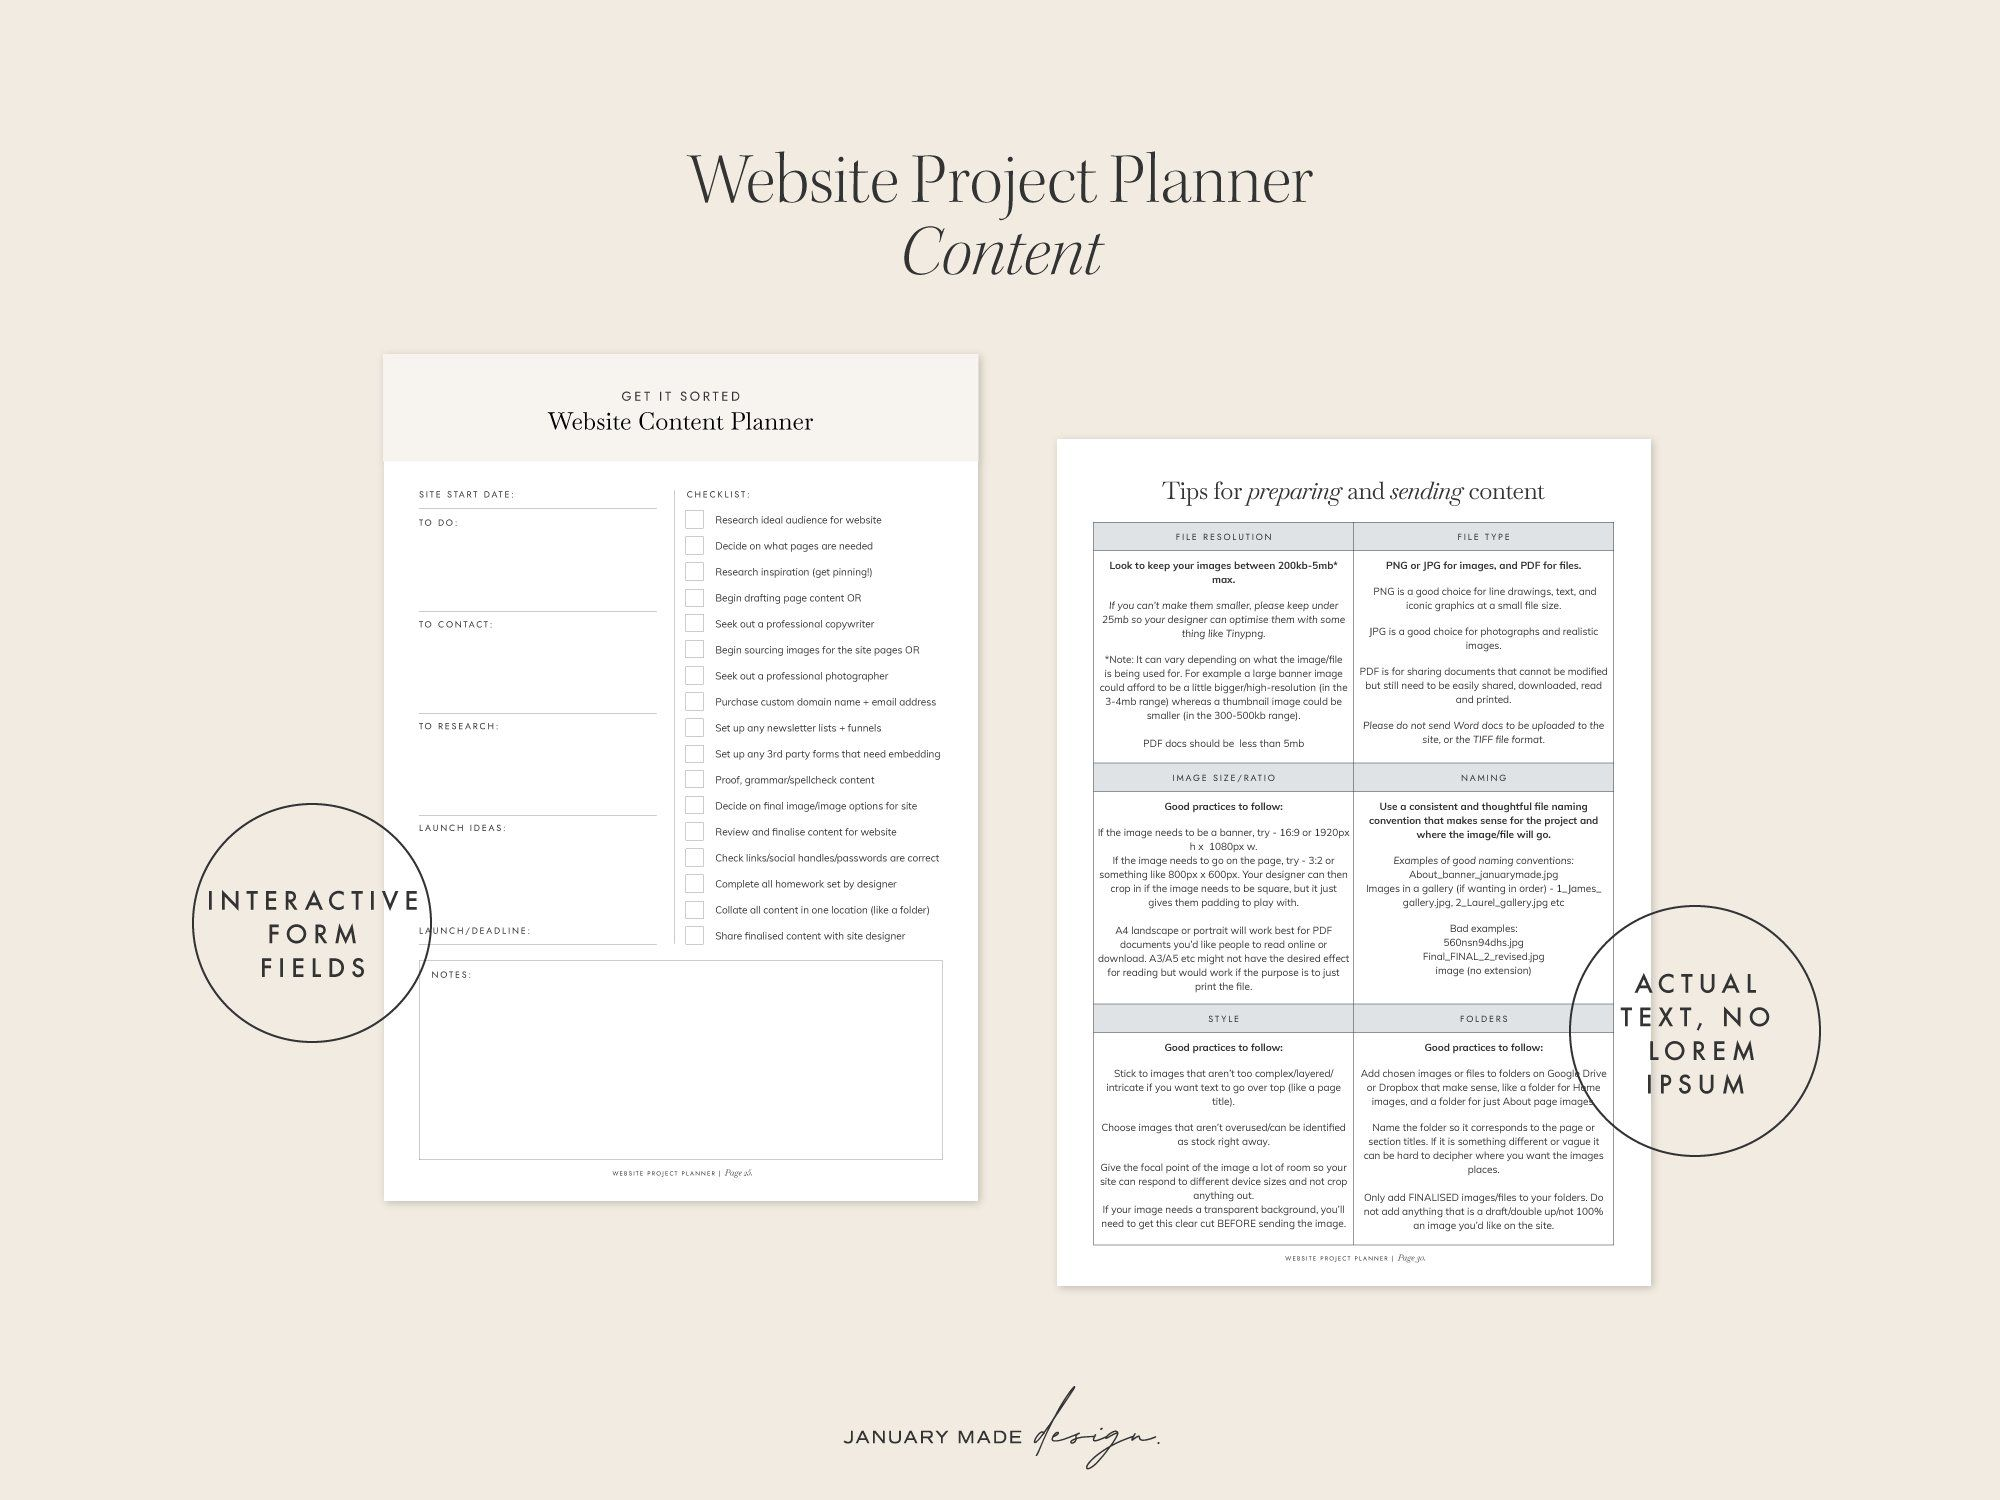 Website Project Planner Template Project Planner Template Project Planner Indesign Templates Website redesign project plan template